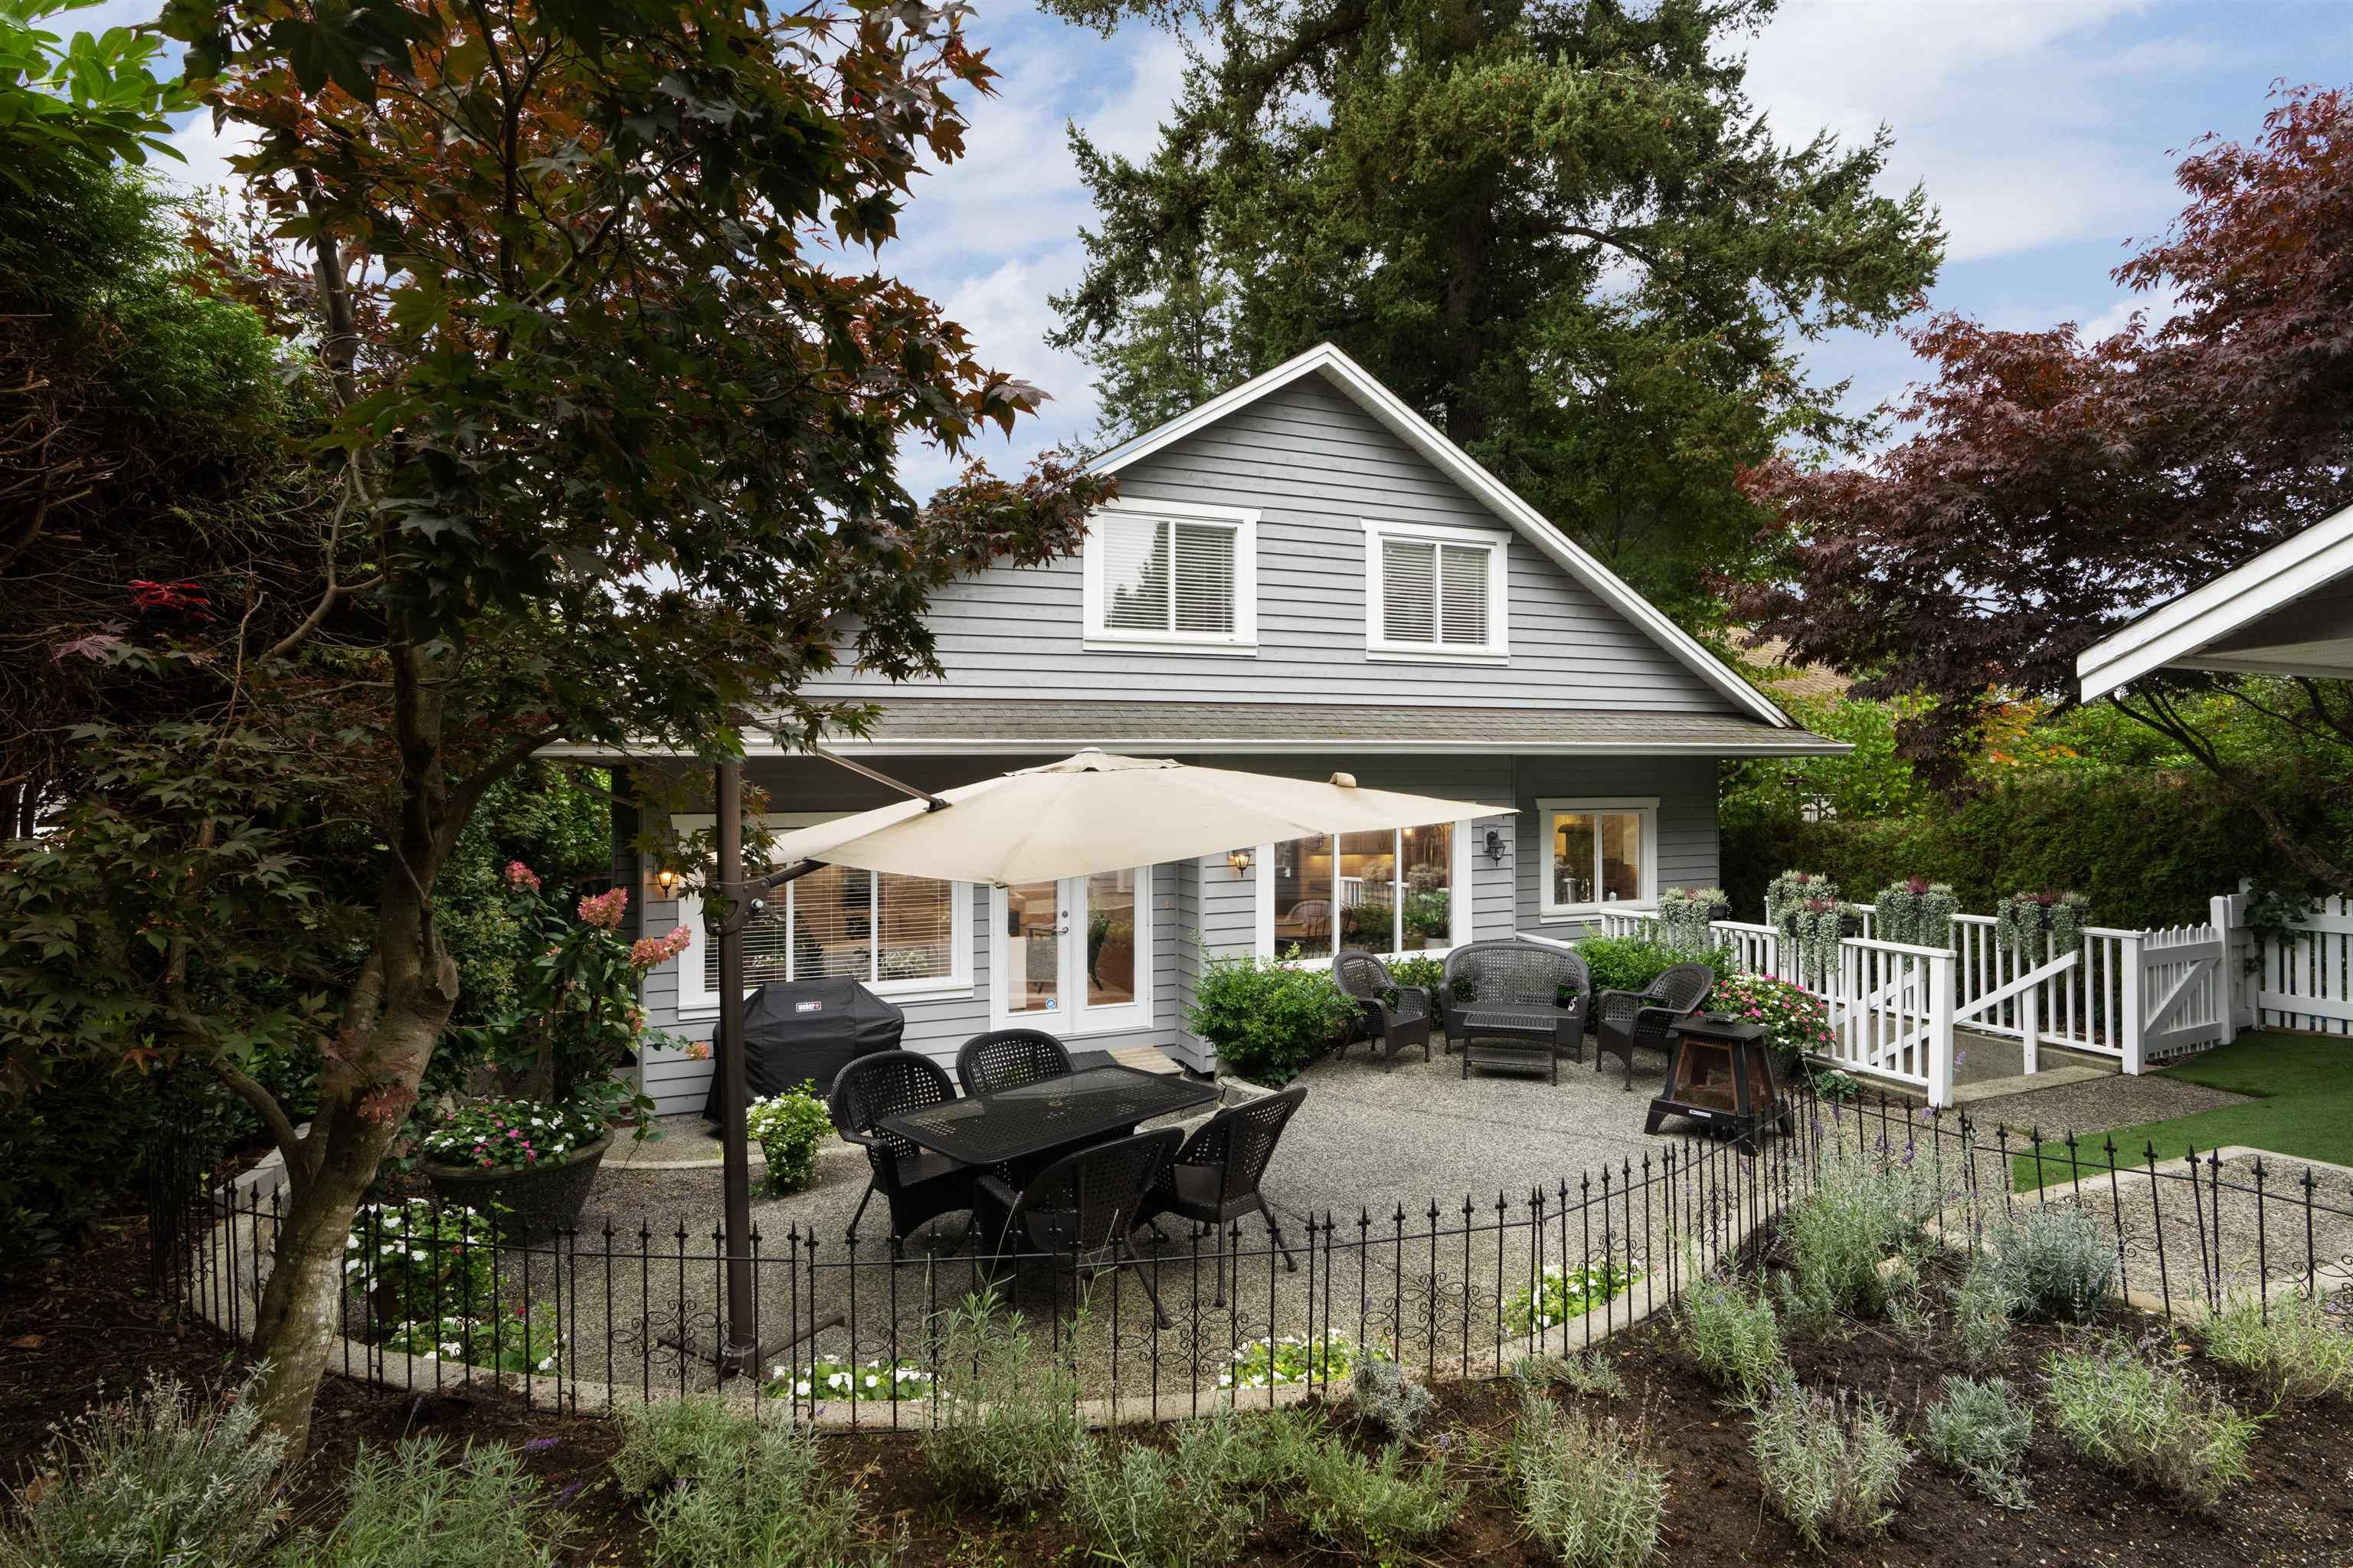 Main Photo: 150 W OSBORNE Road in North Vancouver: Upper Lonsdale House for sale : MLS®# R2625704